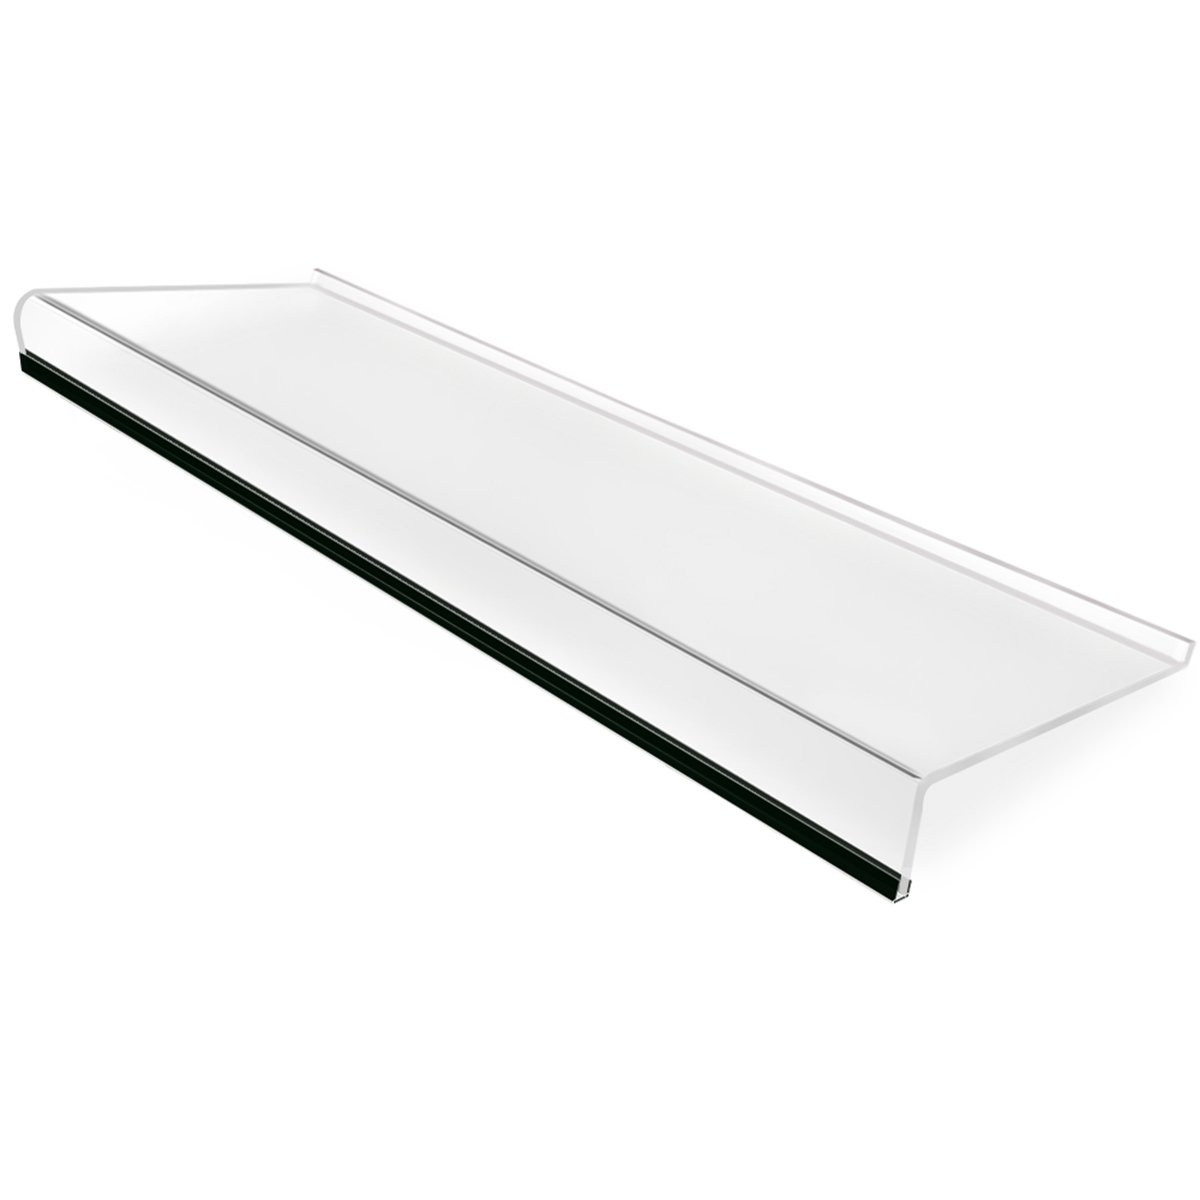 SupperAcrylic Keyboard Stand For Office Desk, 5mm Thickness Premium Acrylic Keyboard Riser Ticker Than Others, Ergonomic Tilted Computer Keyboard Holder For Home Table With Scratch-Free Protection